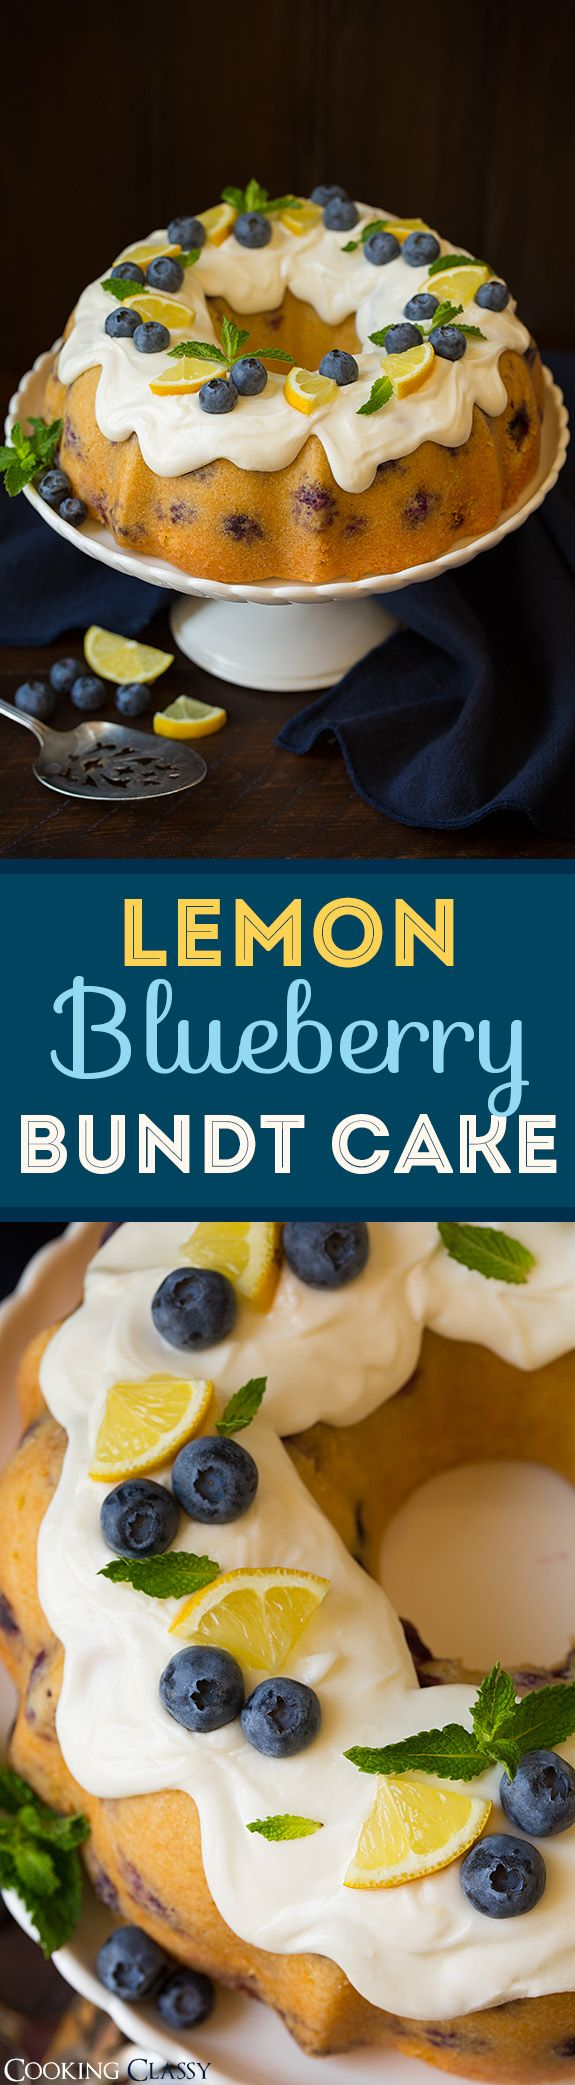 Lemon Blueberry Bundt Cake with Lemon Cream Cheese Icing - this cake is unbelievably good!! So vibrant and lemony and perfectly paired with sweet blueberries! A dreamy summer cake!